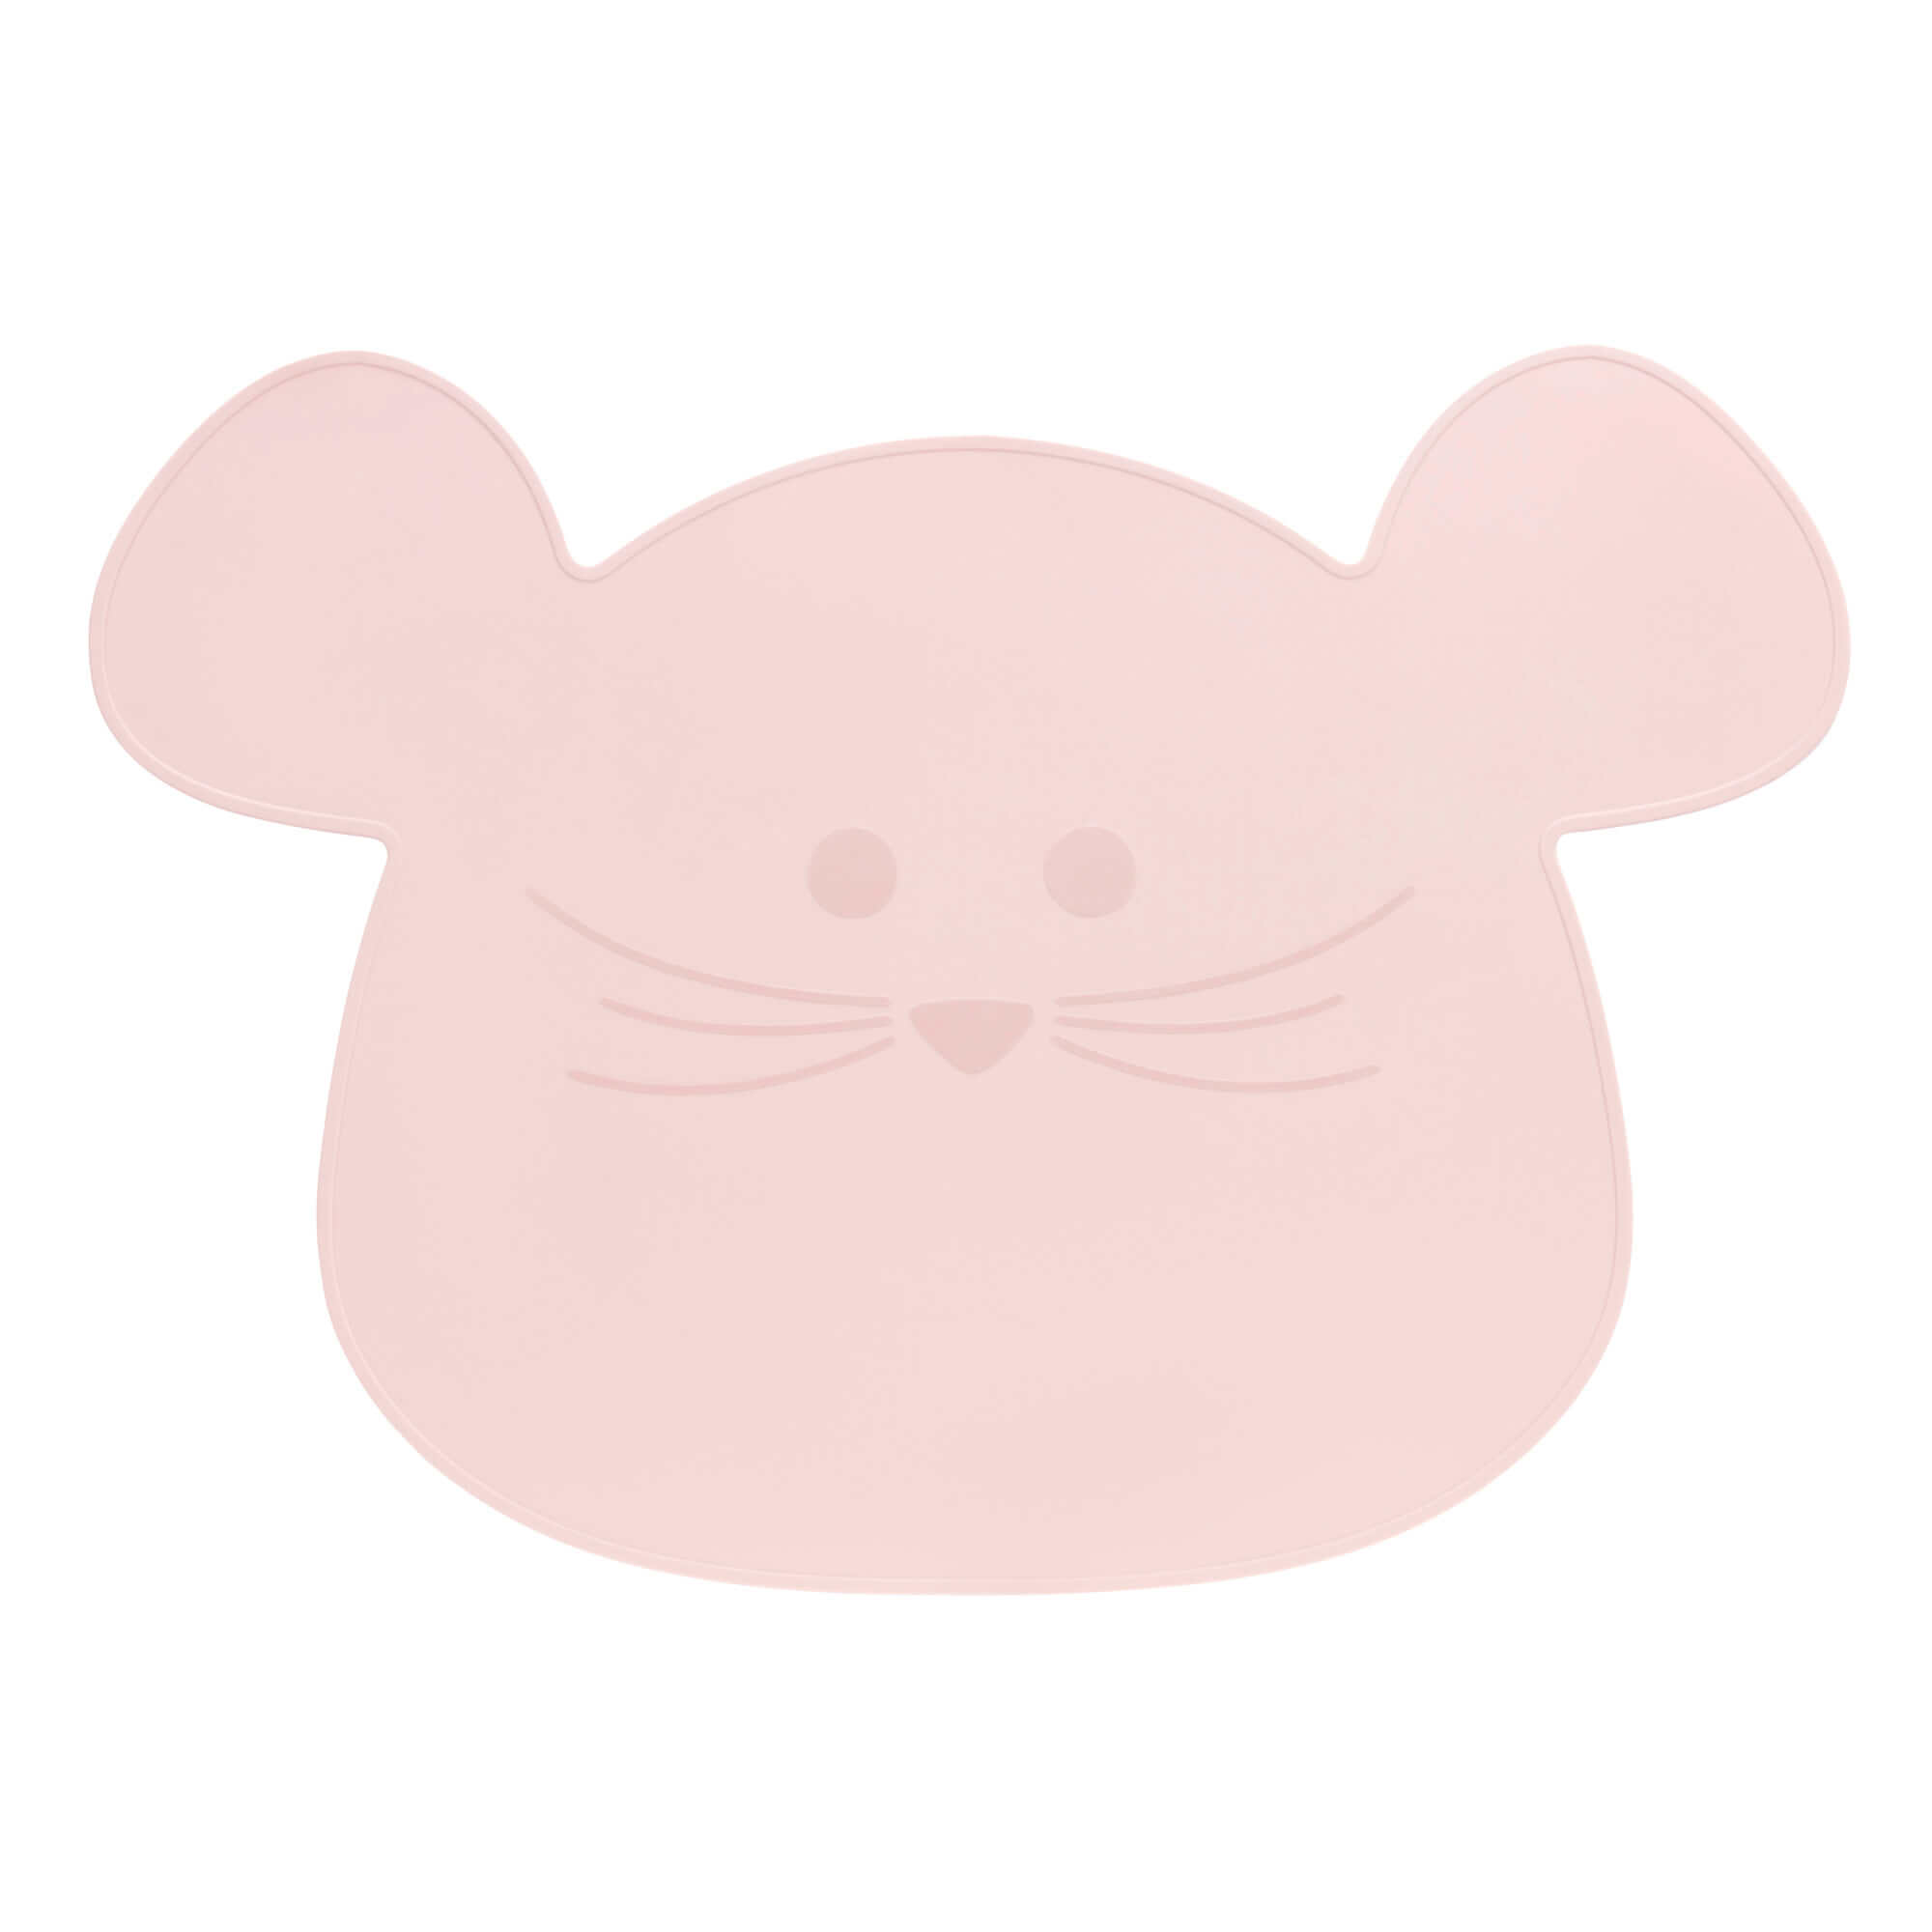 Placemat Silicone Little Chum